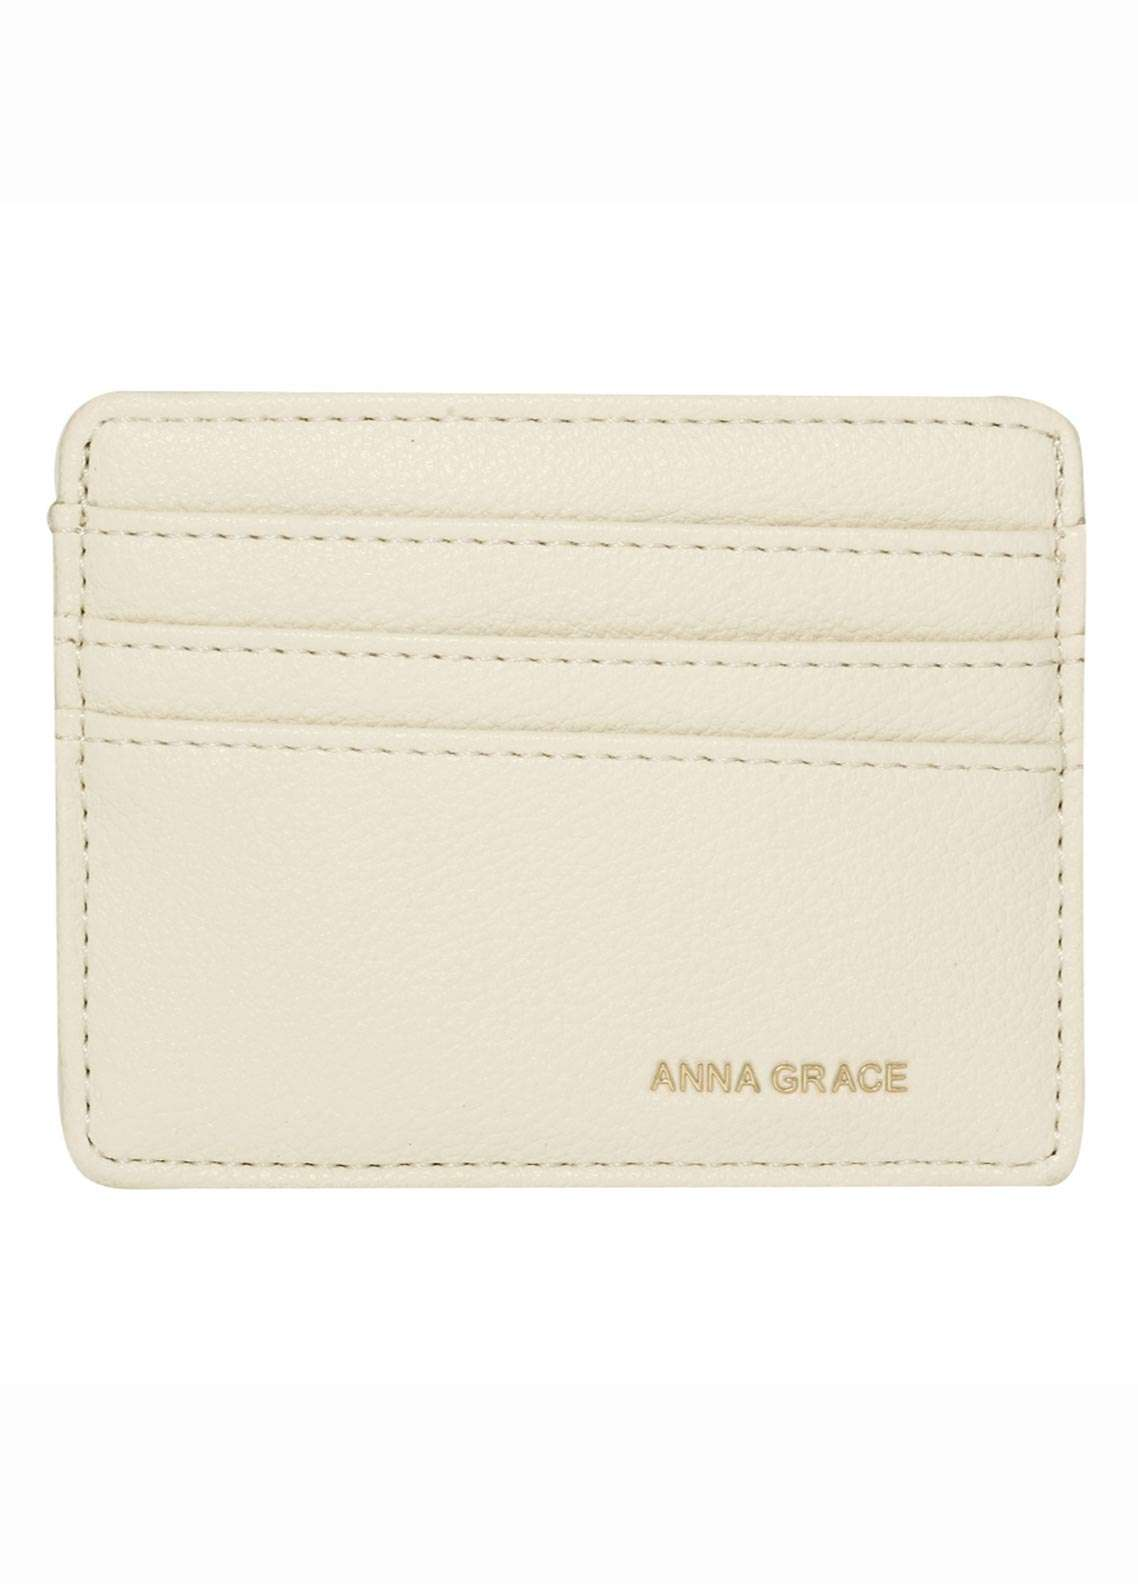 Anna Grace London Faux Leather Wallet   for Women  Ivory with Rugged Texture